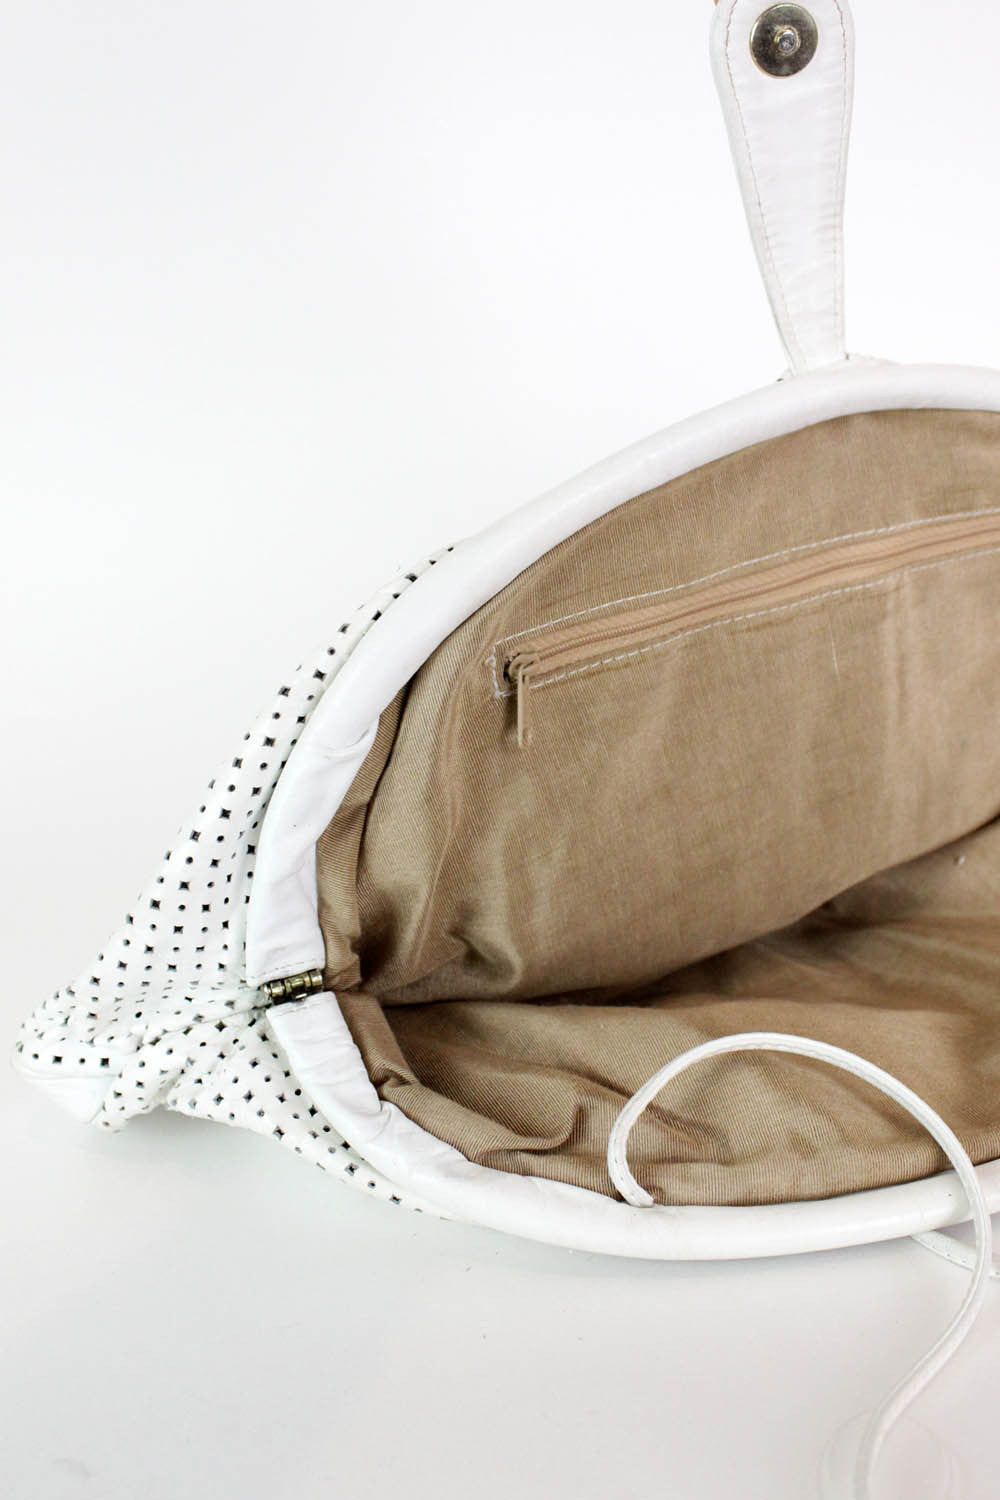 Oversized White Leather Clutch or Crossbody